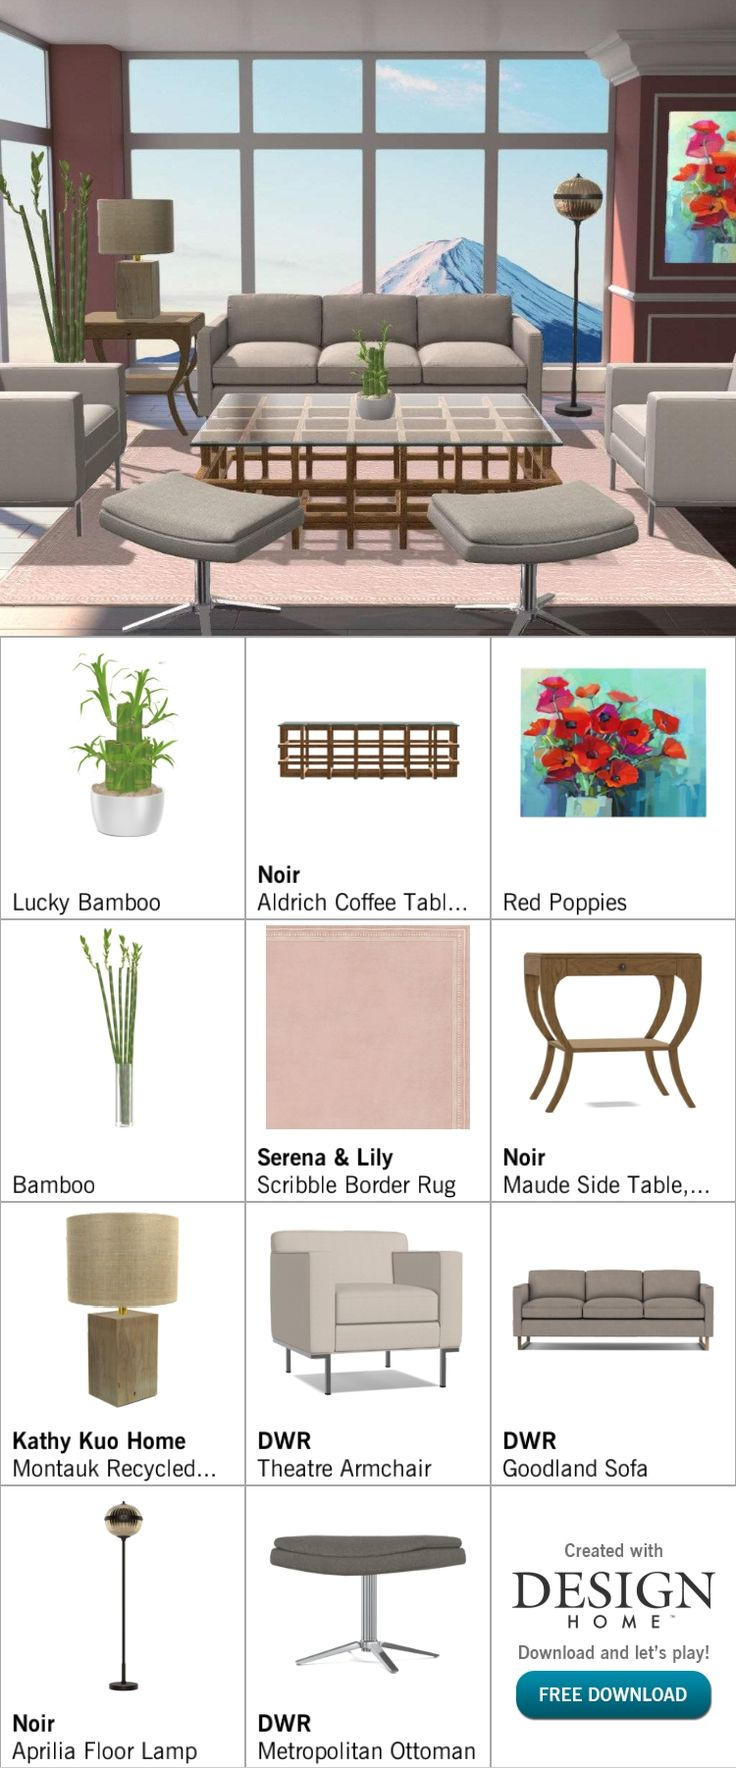 24 best My Home Designs - game app images on Pinterest   Game app ...